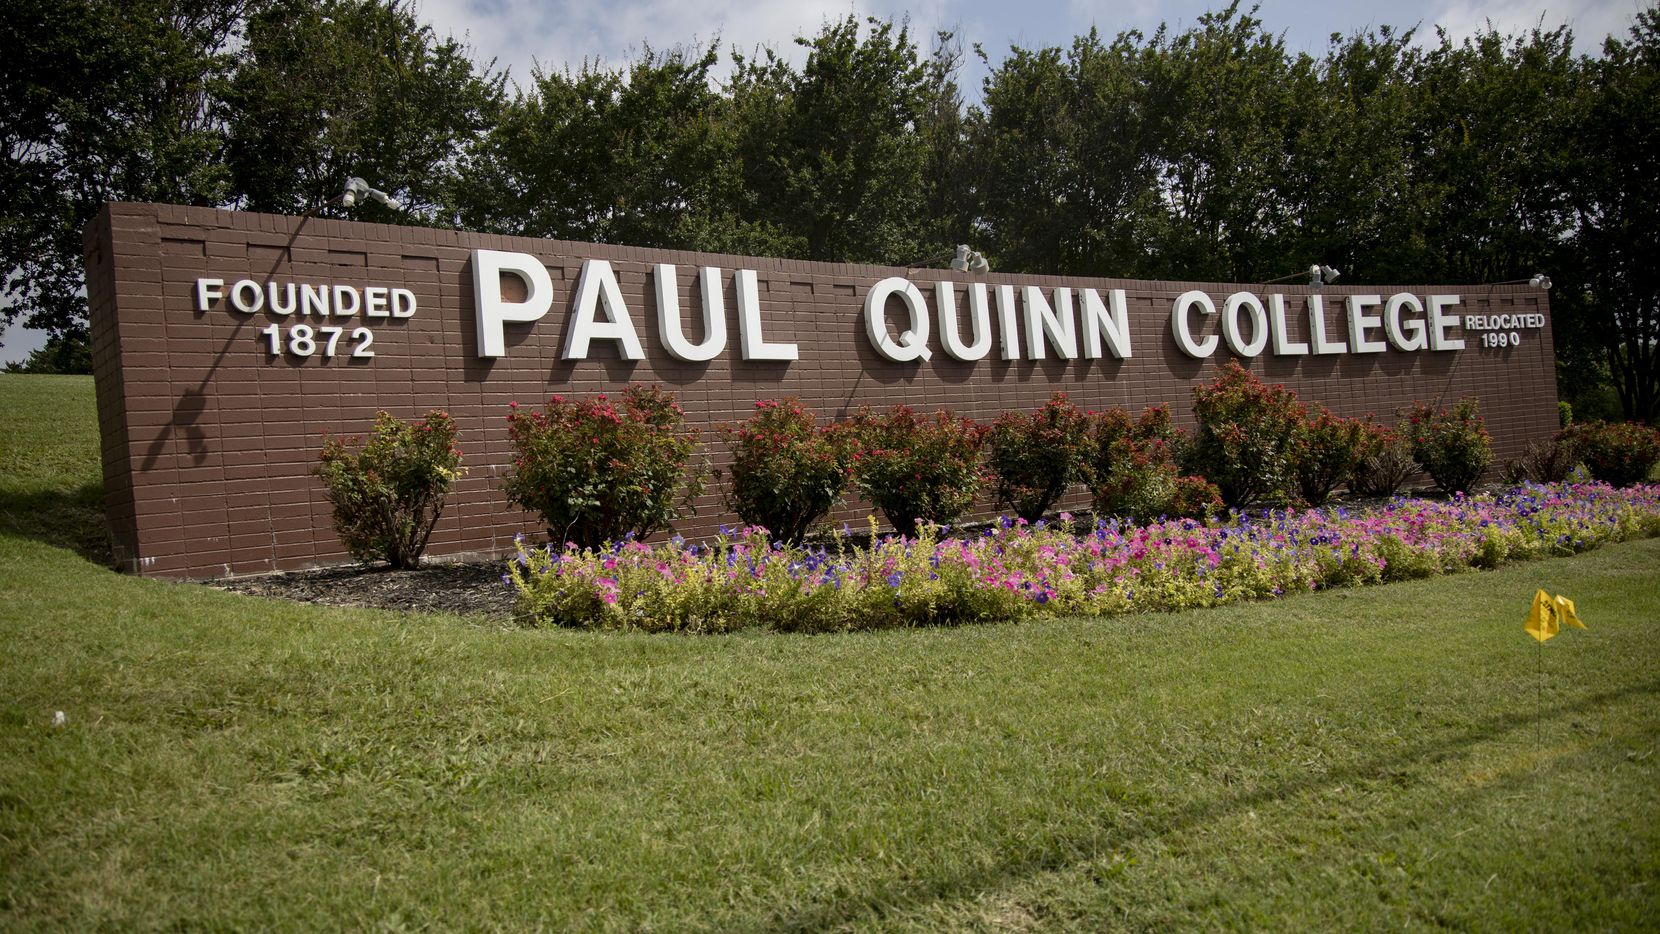 Paul Quinn College in Dallas on Thursday, June 27, 2019.